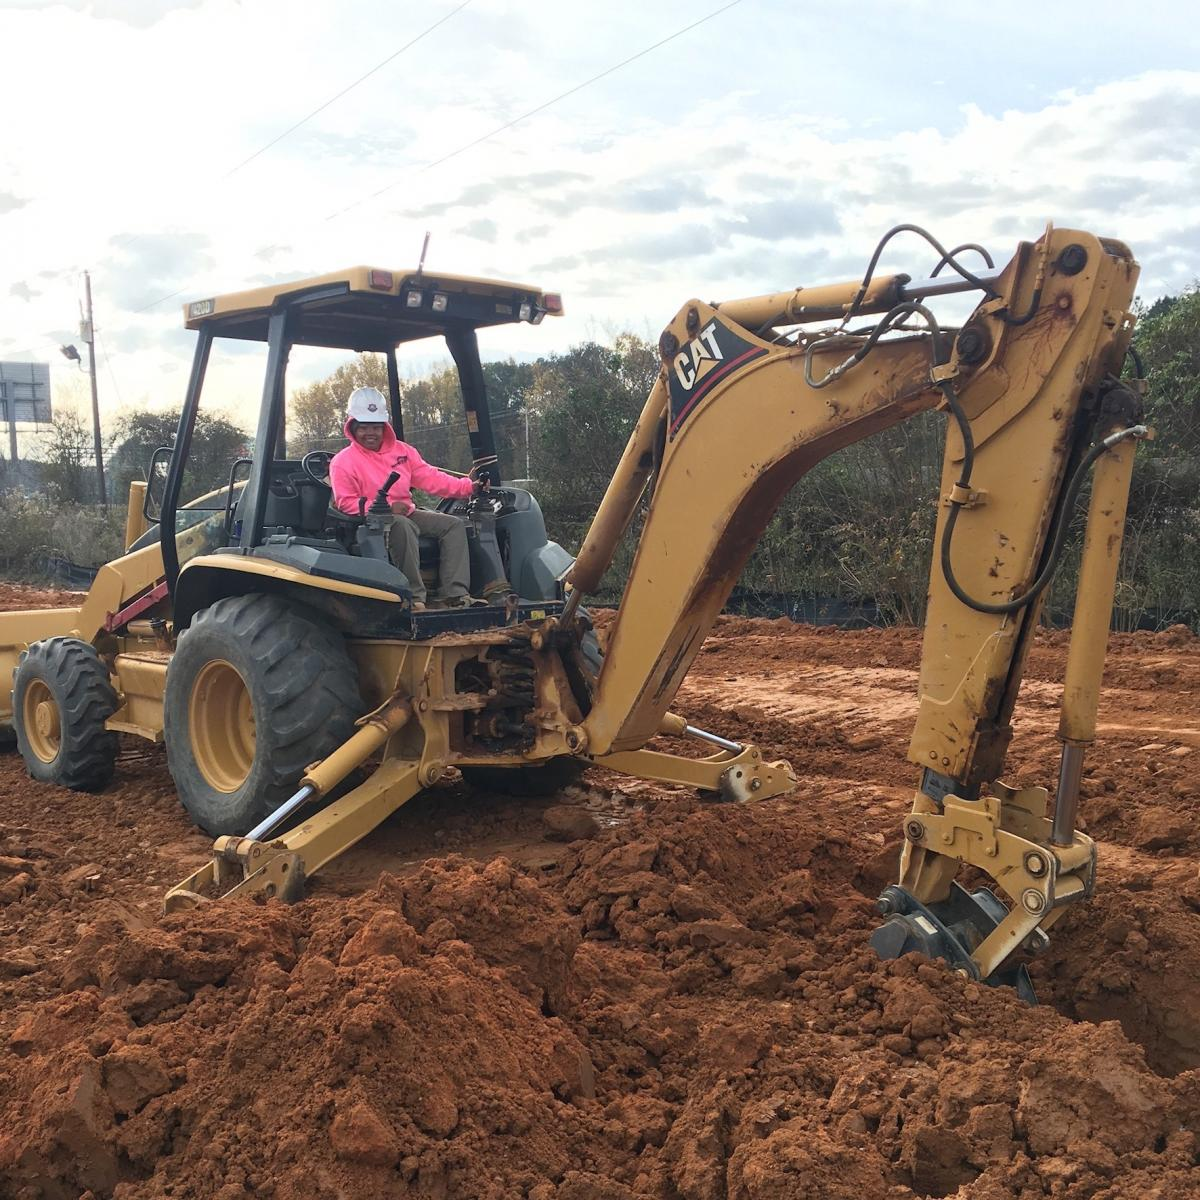 Mecah's comfort with heavy machinery proved useful for her internship